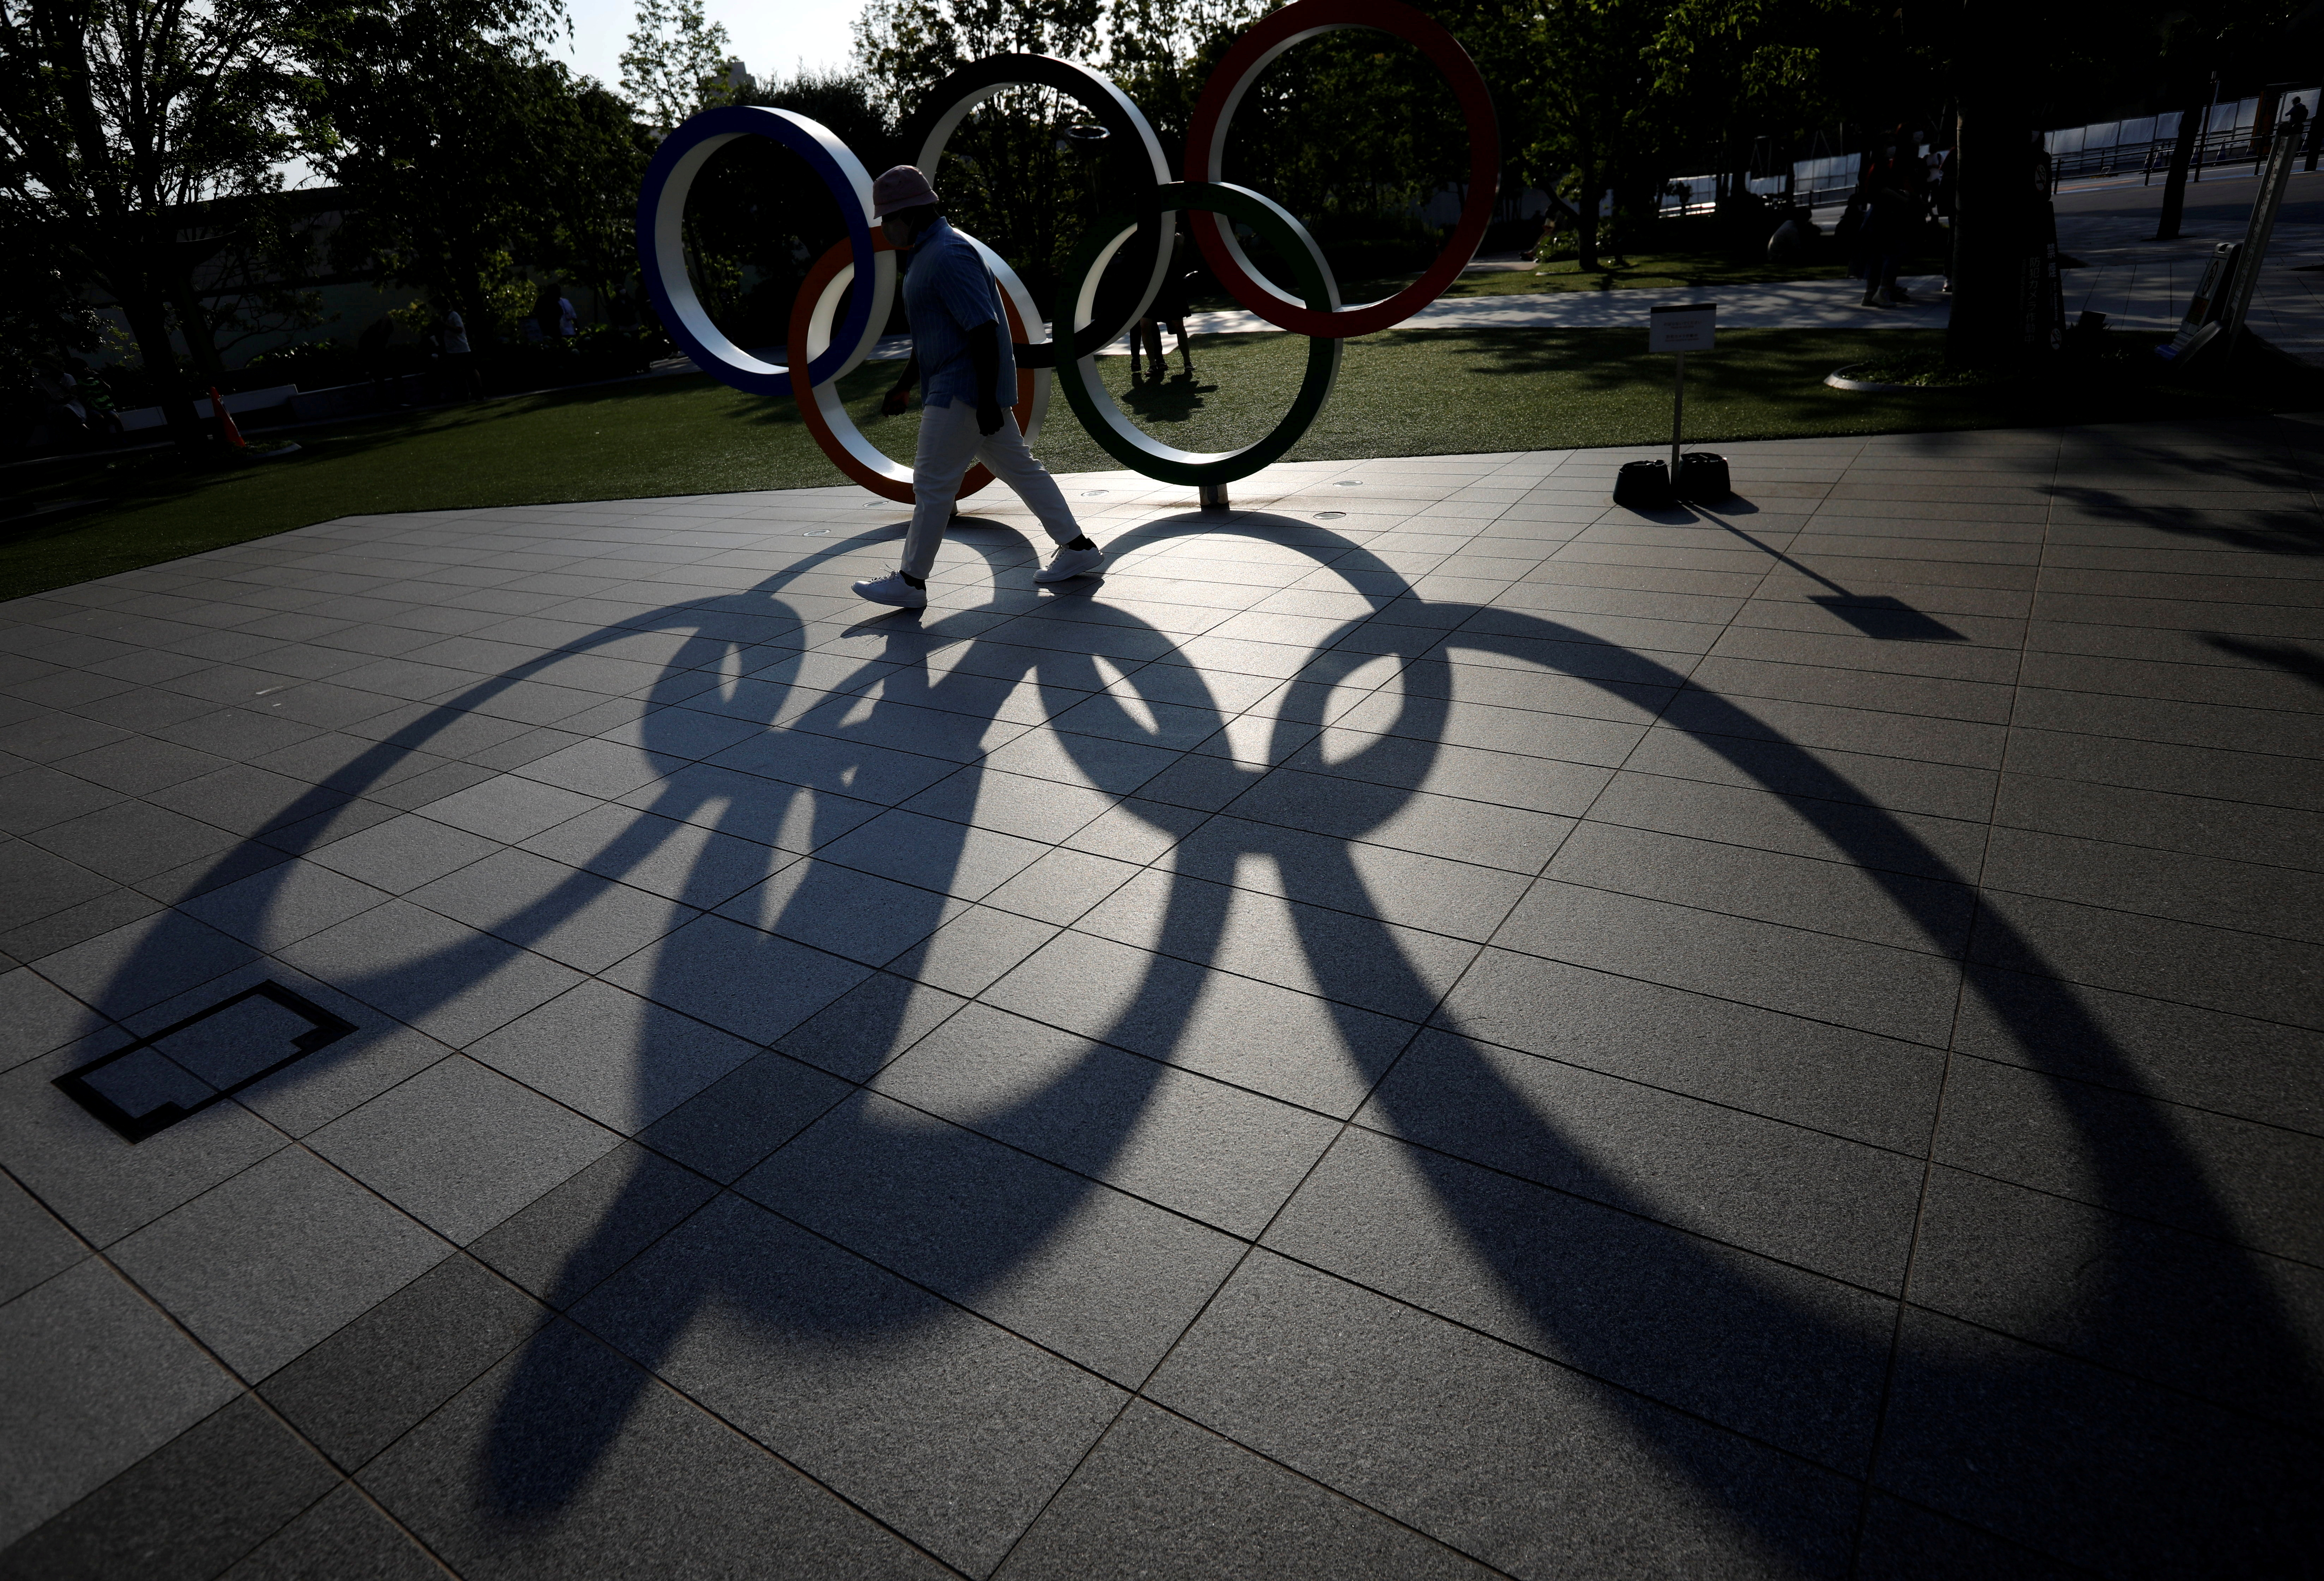 A visitor and the Olympic Rings monument cast shadows on the ground outside the Japan Olympic Committee (JOC) headquarters near the National Stadium, the main stadium for the 2020 Tokyo Olympic Games that have been postponed to 2021 due to the coronavirus disease (COVID-19) outbreak, in Tokyo, Japan May 30, 2021.  REUTERS/Issei Kato/File Photo